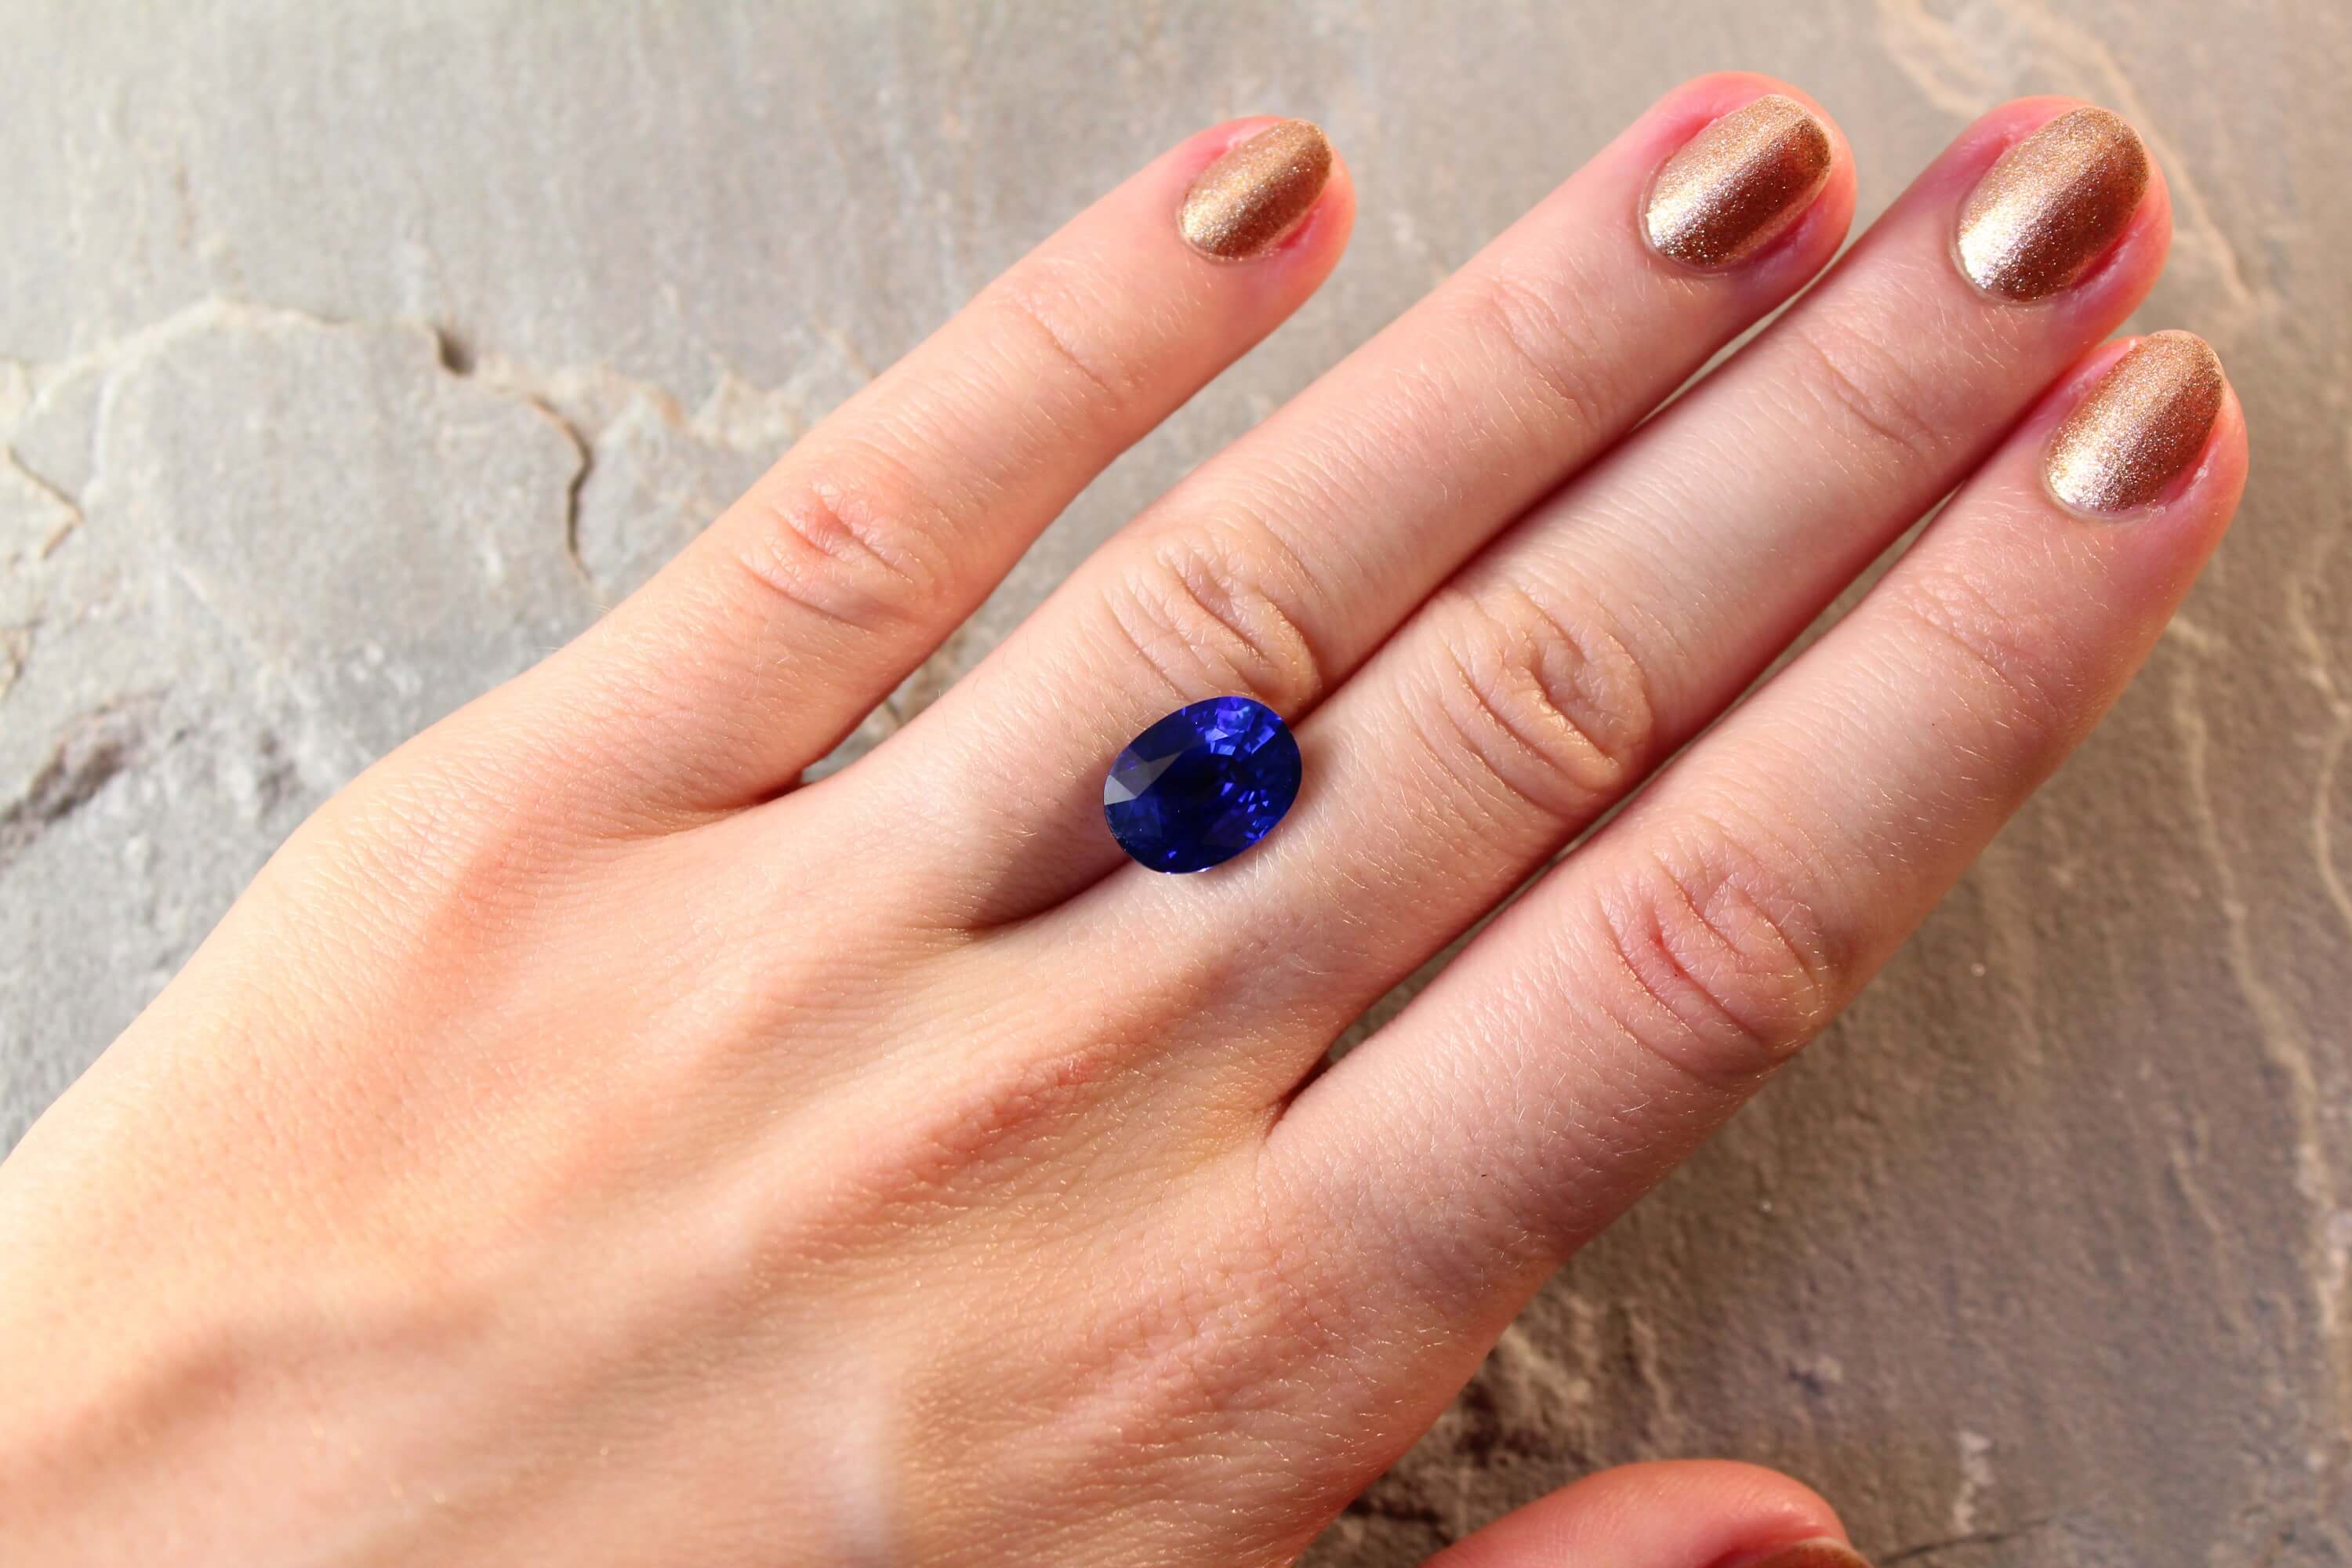 6.64 ct royal blue oval sapphire